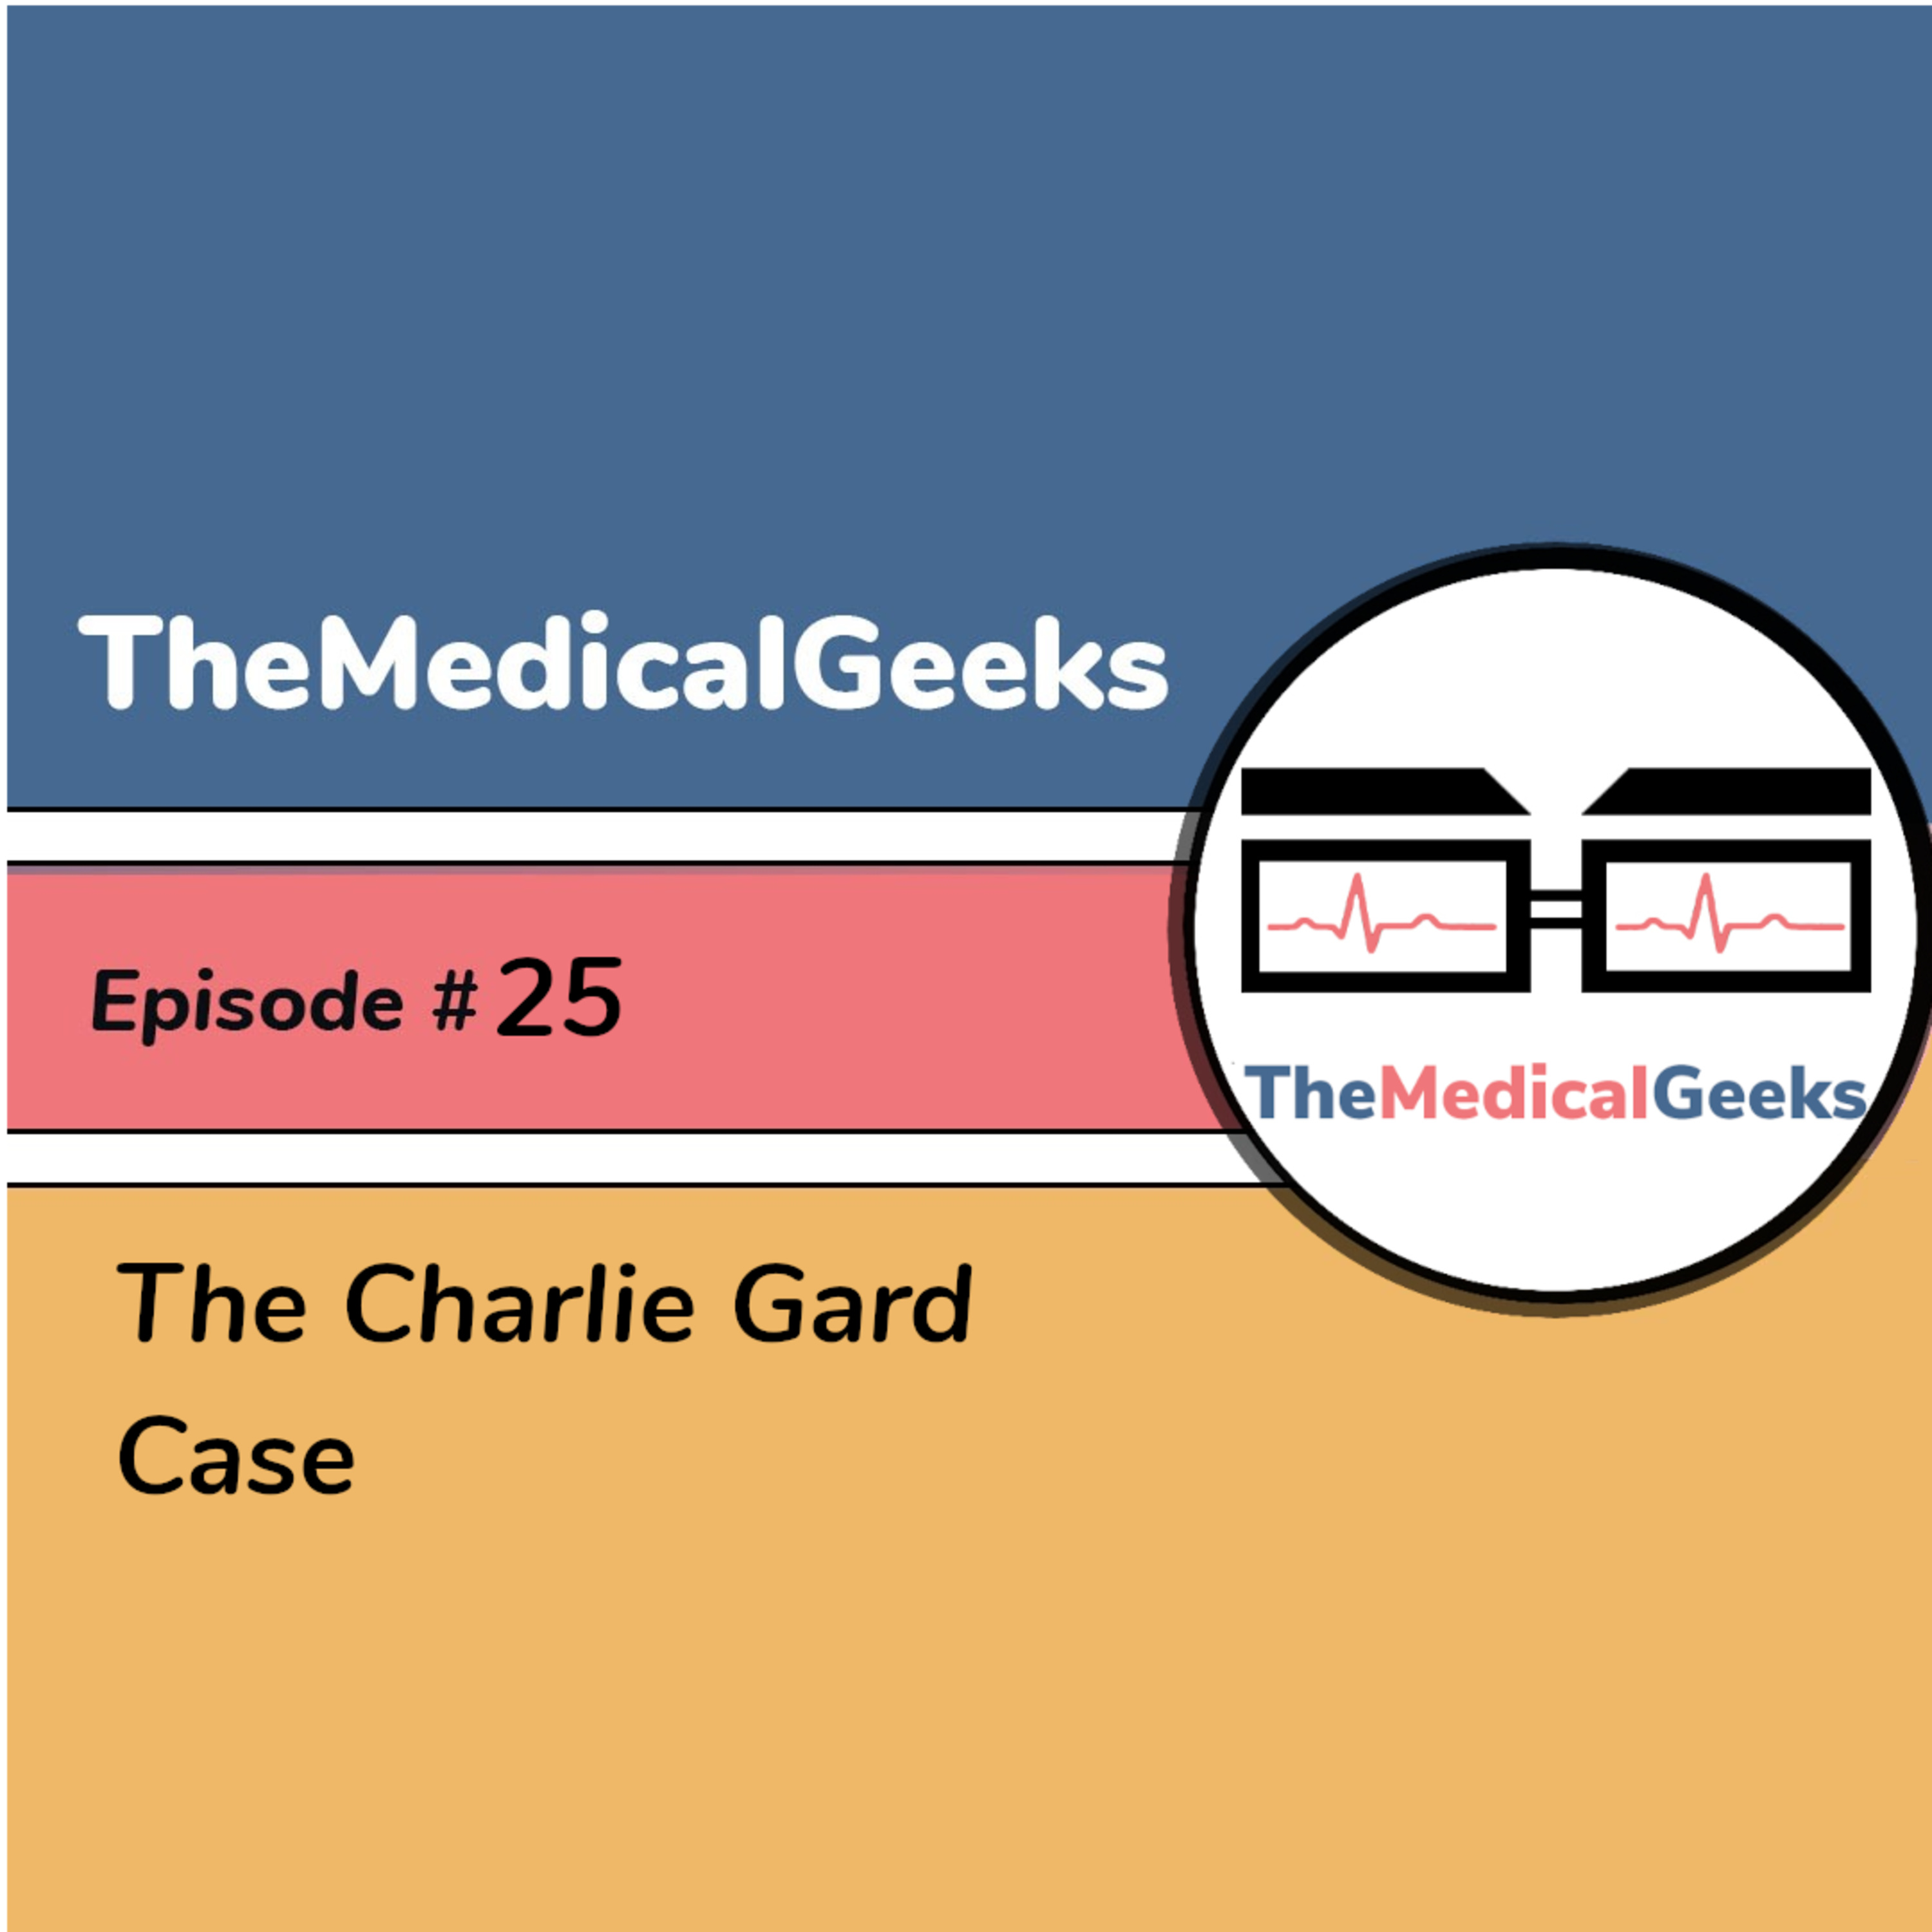 #25 Episode 25: The Charlie Gard Case